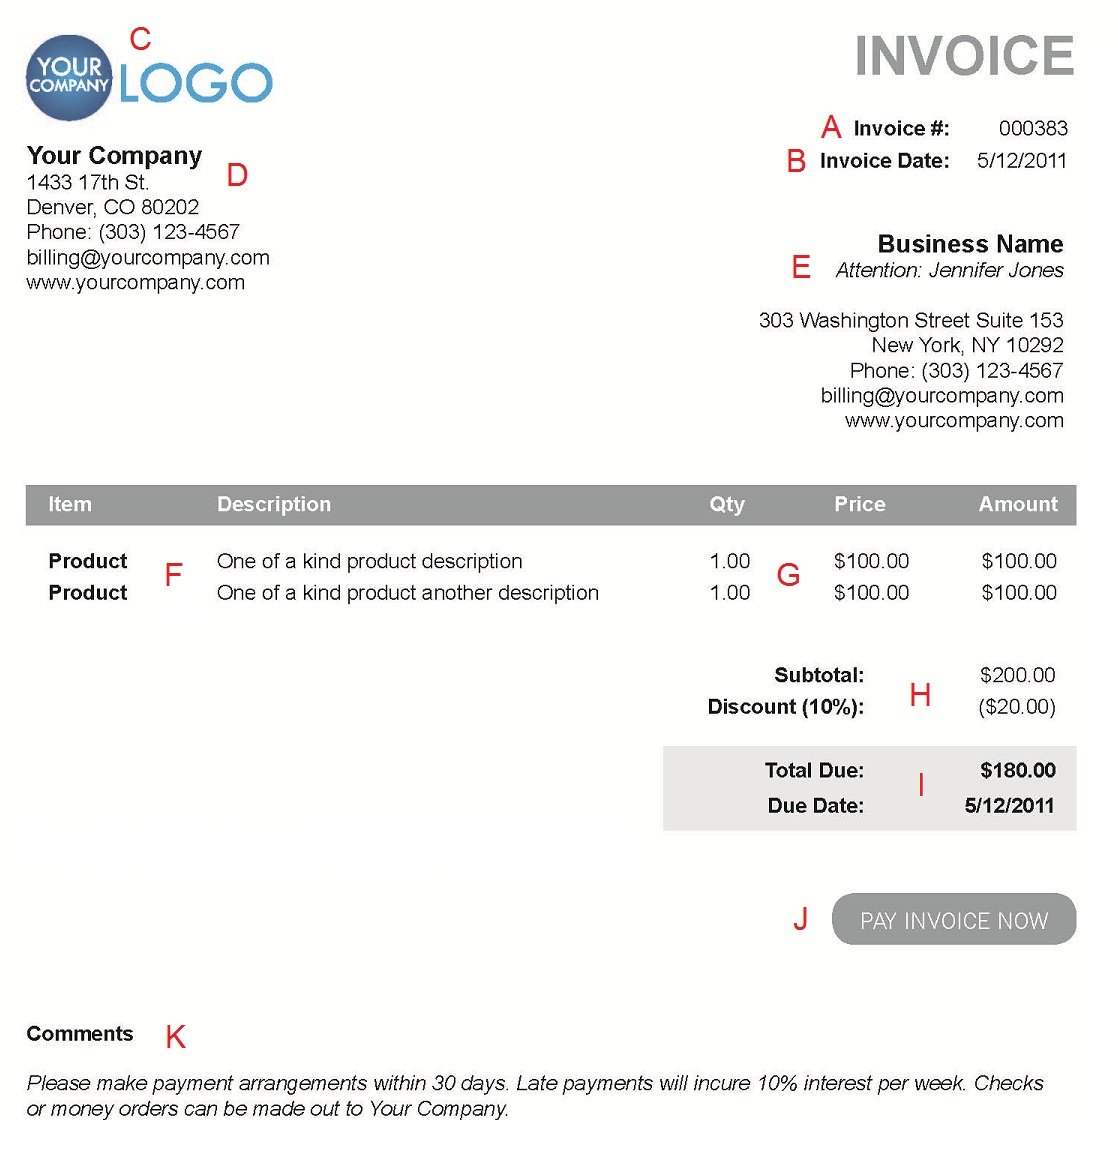 Gpwaus  Marvellous The  Different Sections Of An Electronic Payment Invoice With Exquisite A  With Enchanting Factoring Of Invoices Also Ms Custom Invoice Template In Addition Sage Invoicing And Excel  Invoice Template As Well As Free Template For Invoice For Services Rendered Additionally Mock Invoice Template From Paysimplecom With Gpwaus  Exquisite The  Different Sections Of An Electronic Payment Invoice With Enchanting A  And Marvellous Factoring Of Invoices Also Ms Custom Invoice Template In Addition Sage Invoicing From Paysimplecom